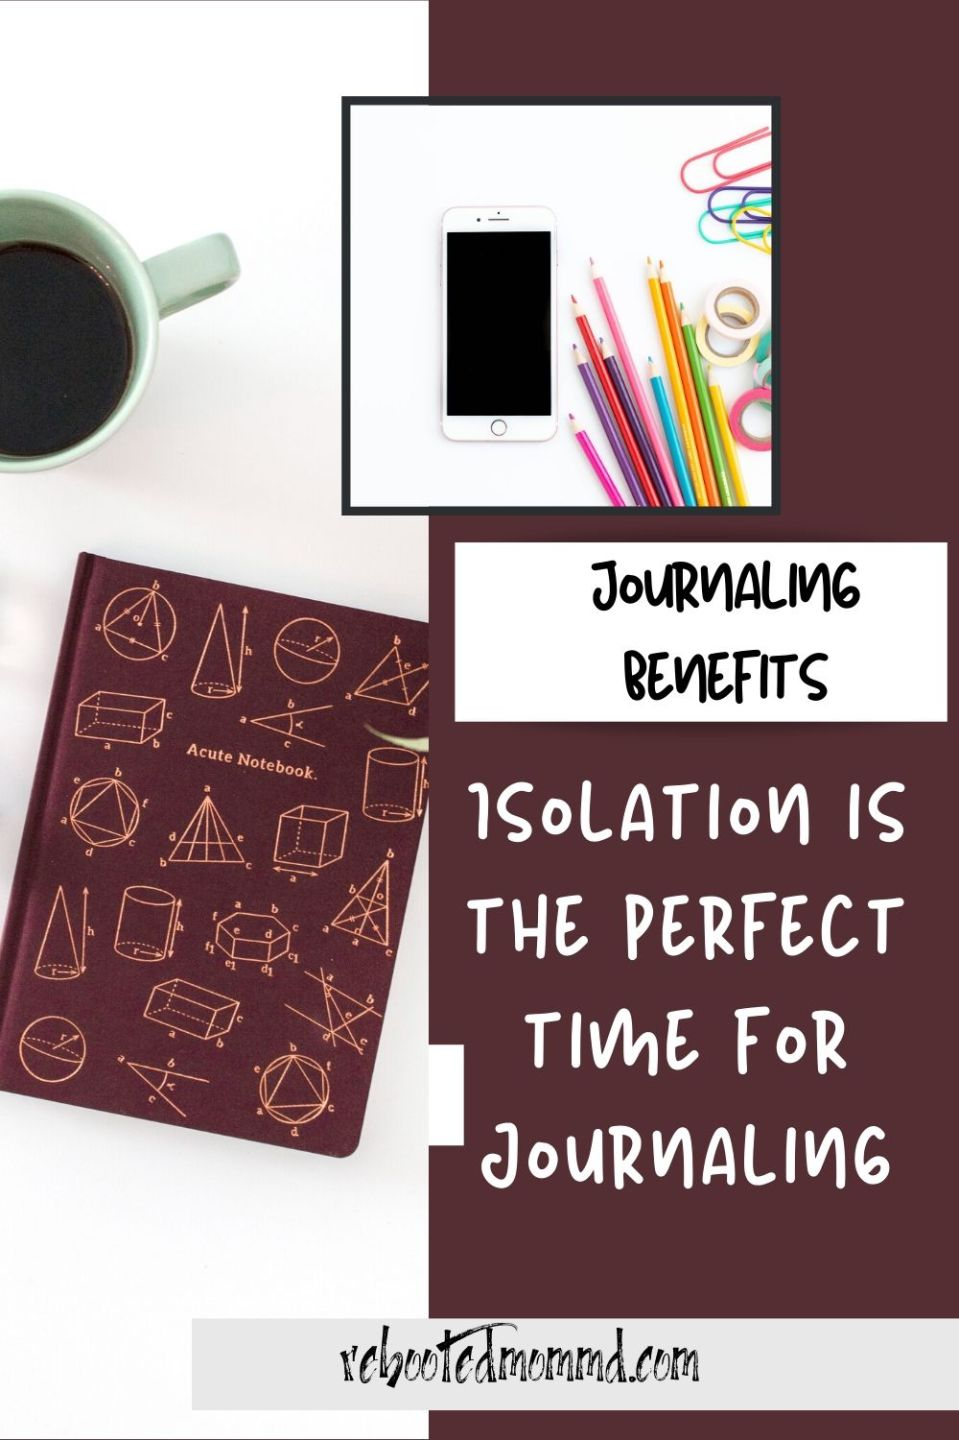 Isolation is the Perfect Time for Journaling